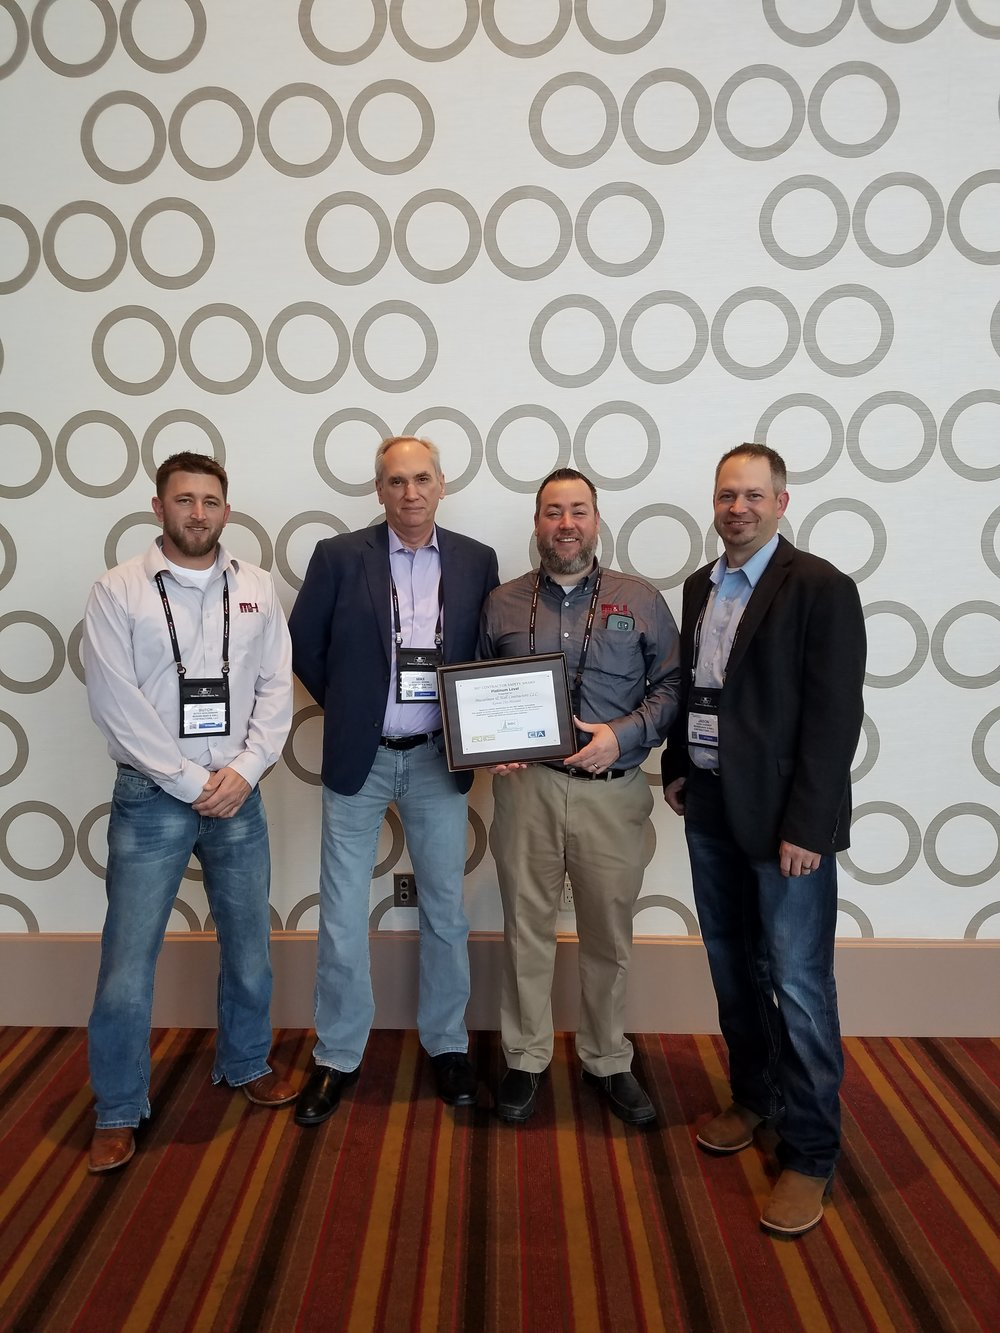 L to R - Butch Schloemann (National Accounts Rep), Michael Morris (President), Jason Fleck (VP - Railroad Division), and Jason Gardner (AVP - Railroad Division) accepting the platinum safety award at the NRC Conference in LA